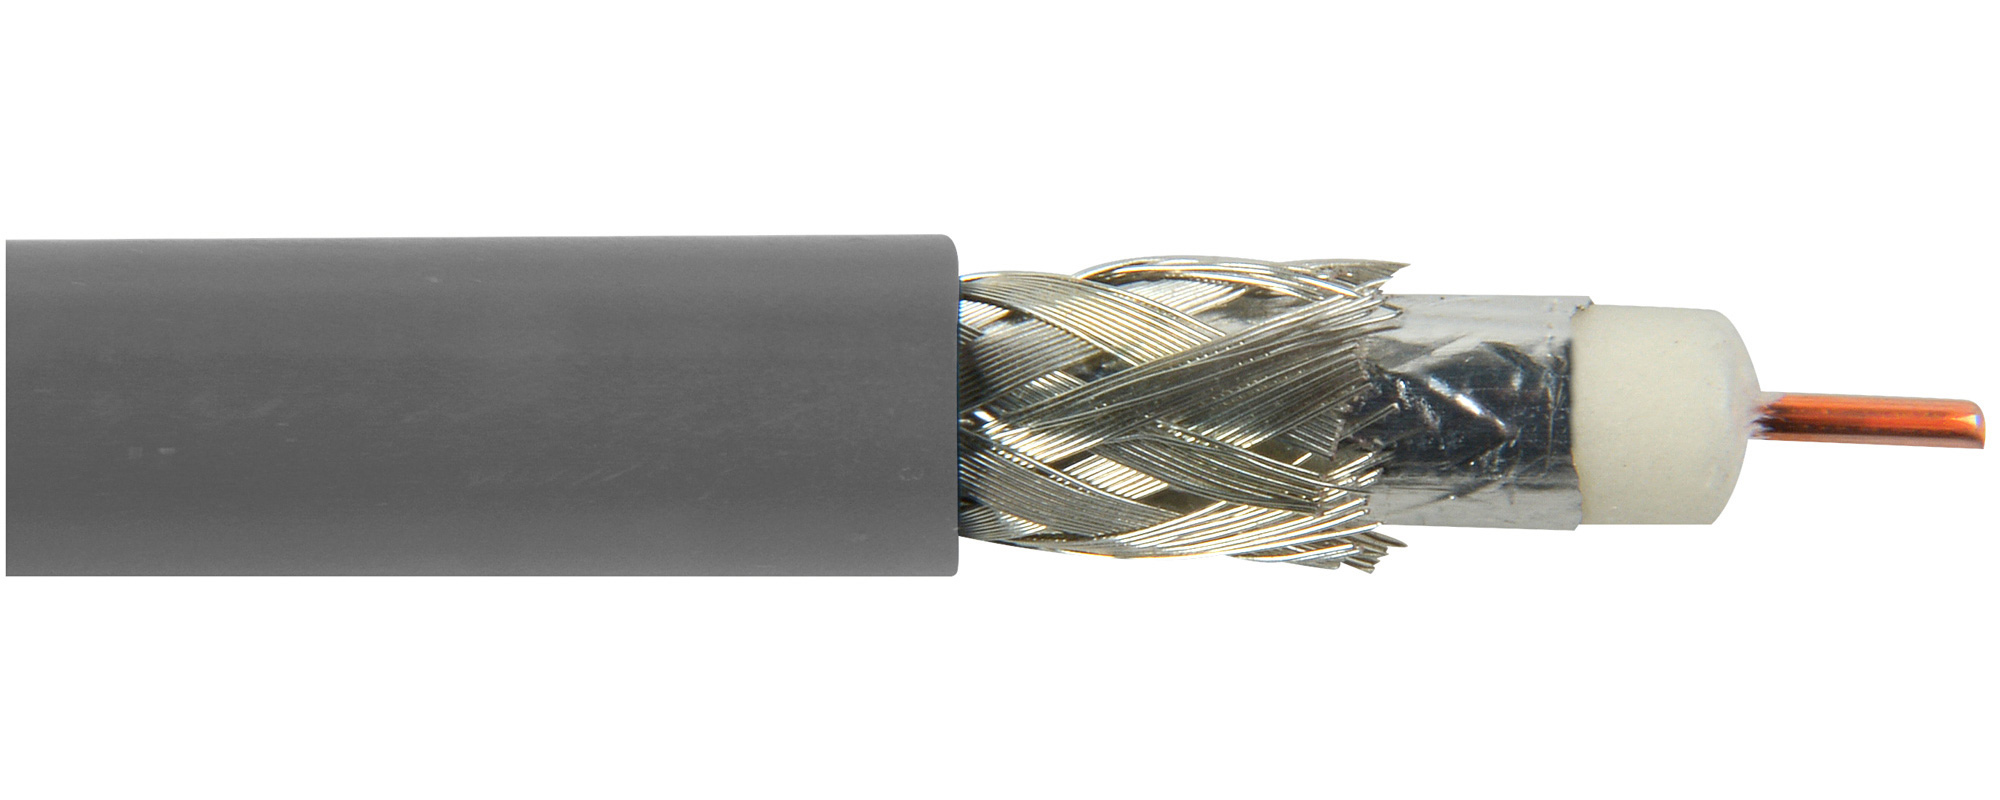 belden 1694a 0085000 cm rated 3g sdi rg6 digital coaxial cable gray 500 foot. Black Bedroom Furniture Sets. Home Design Ideas